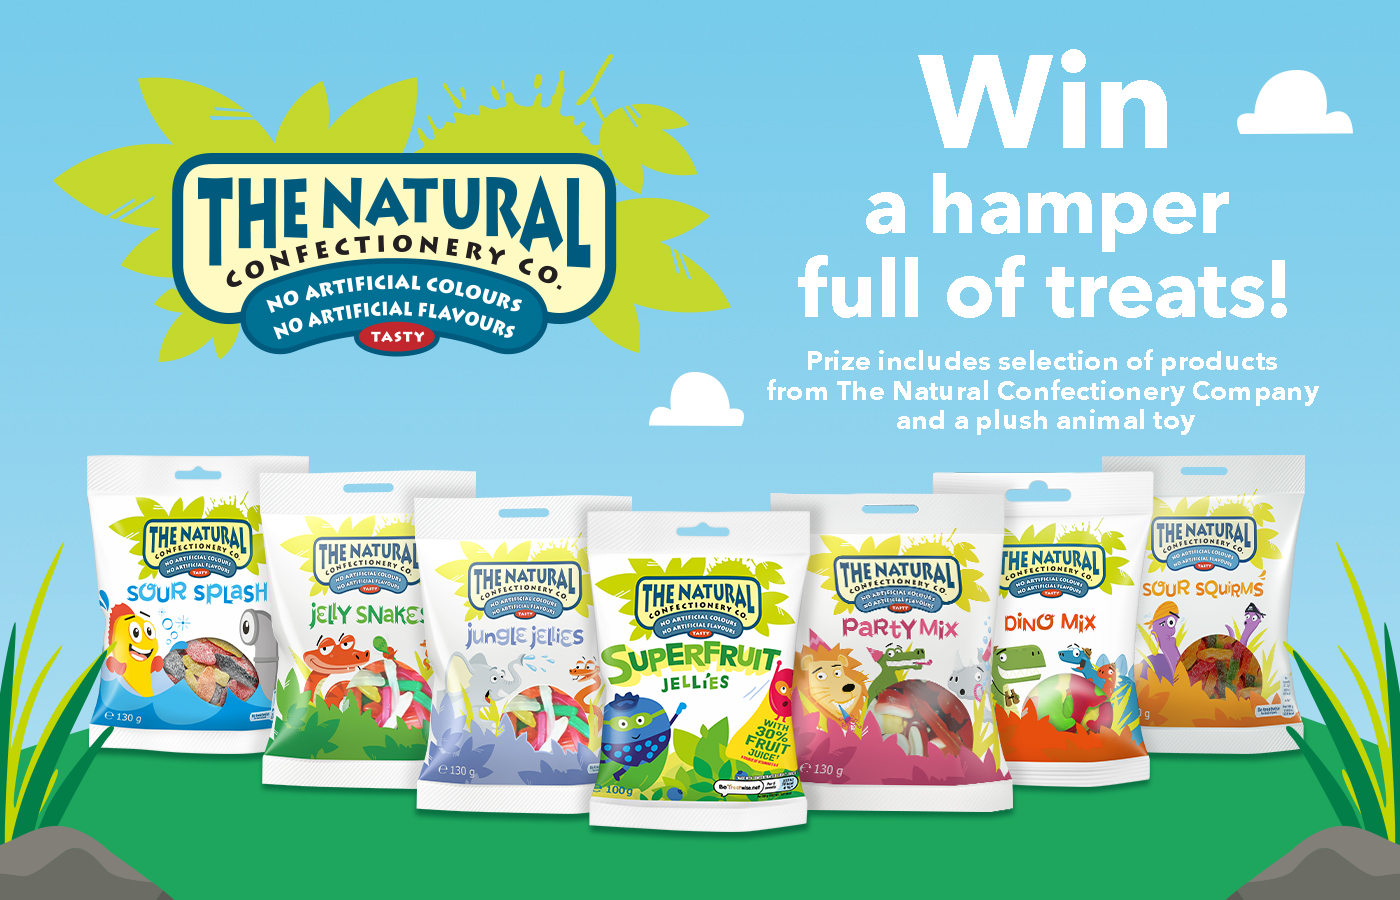 Win a hamper full of treats from The Natural Confectionery